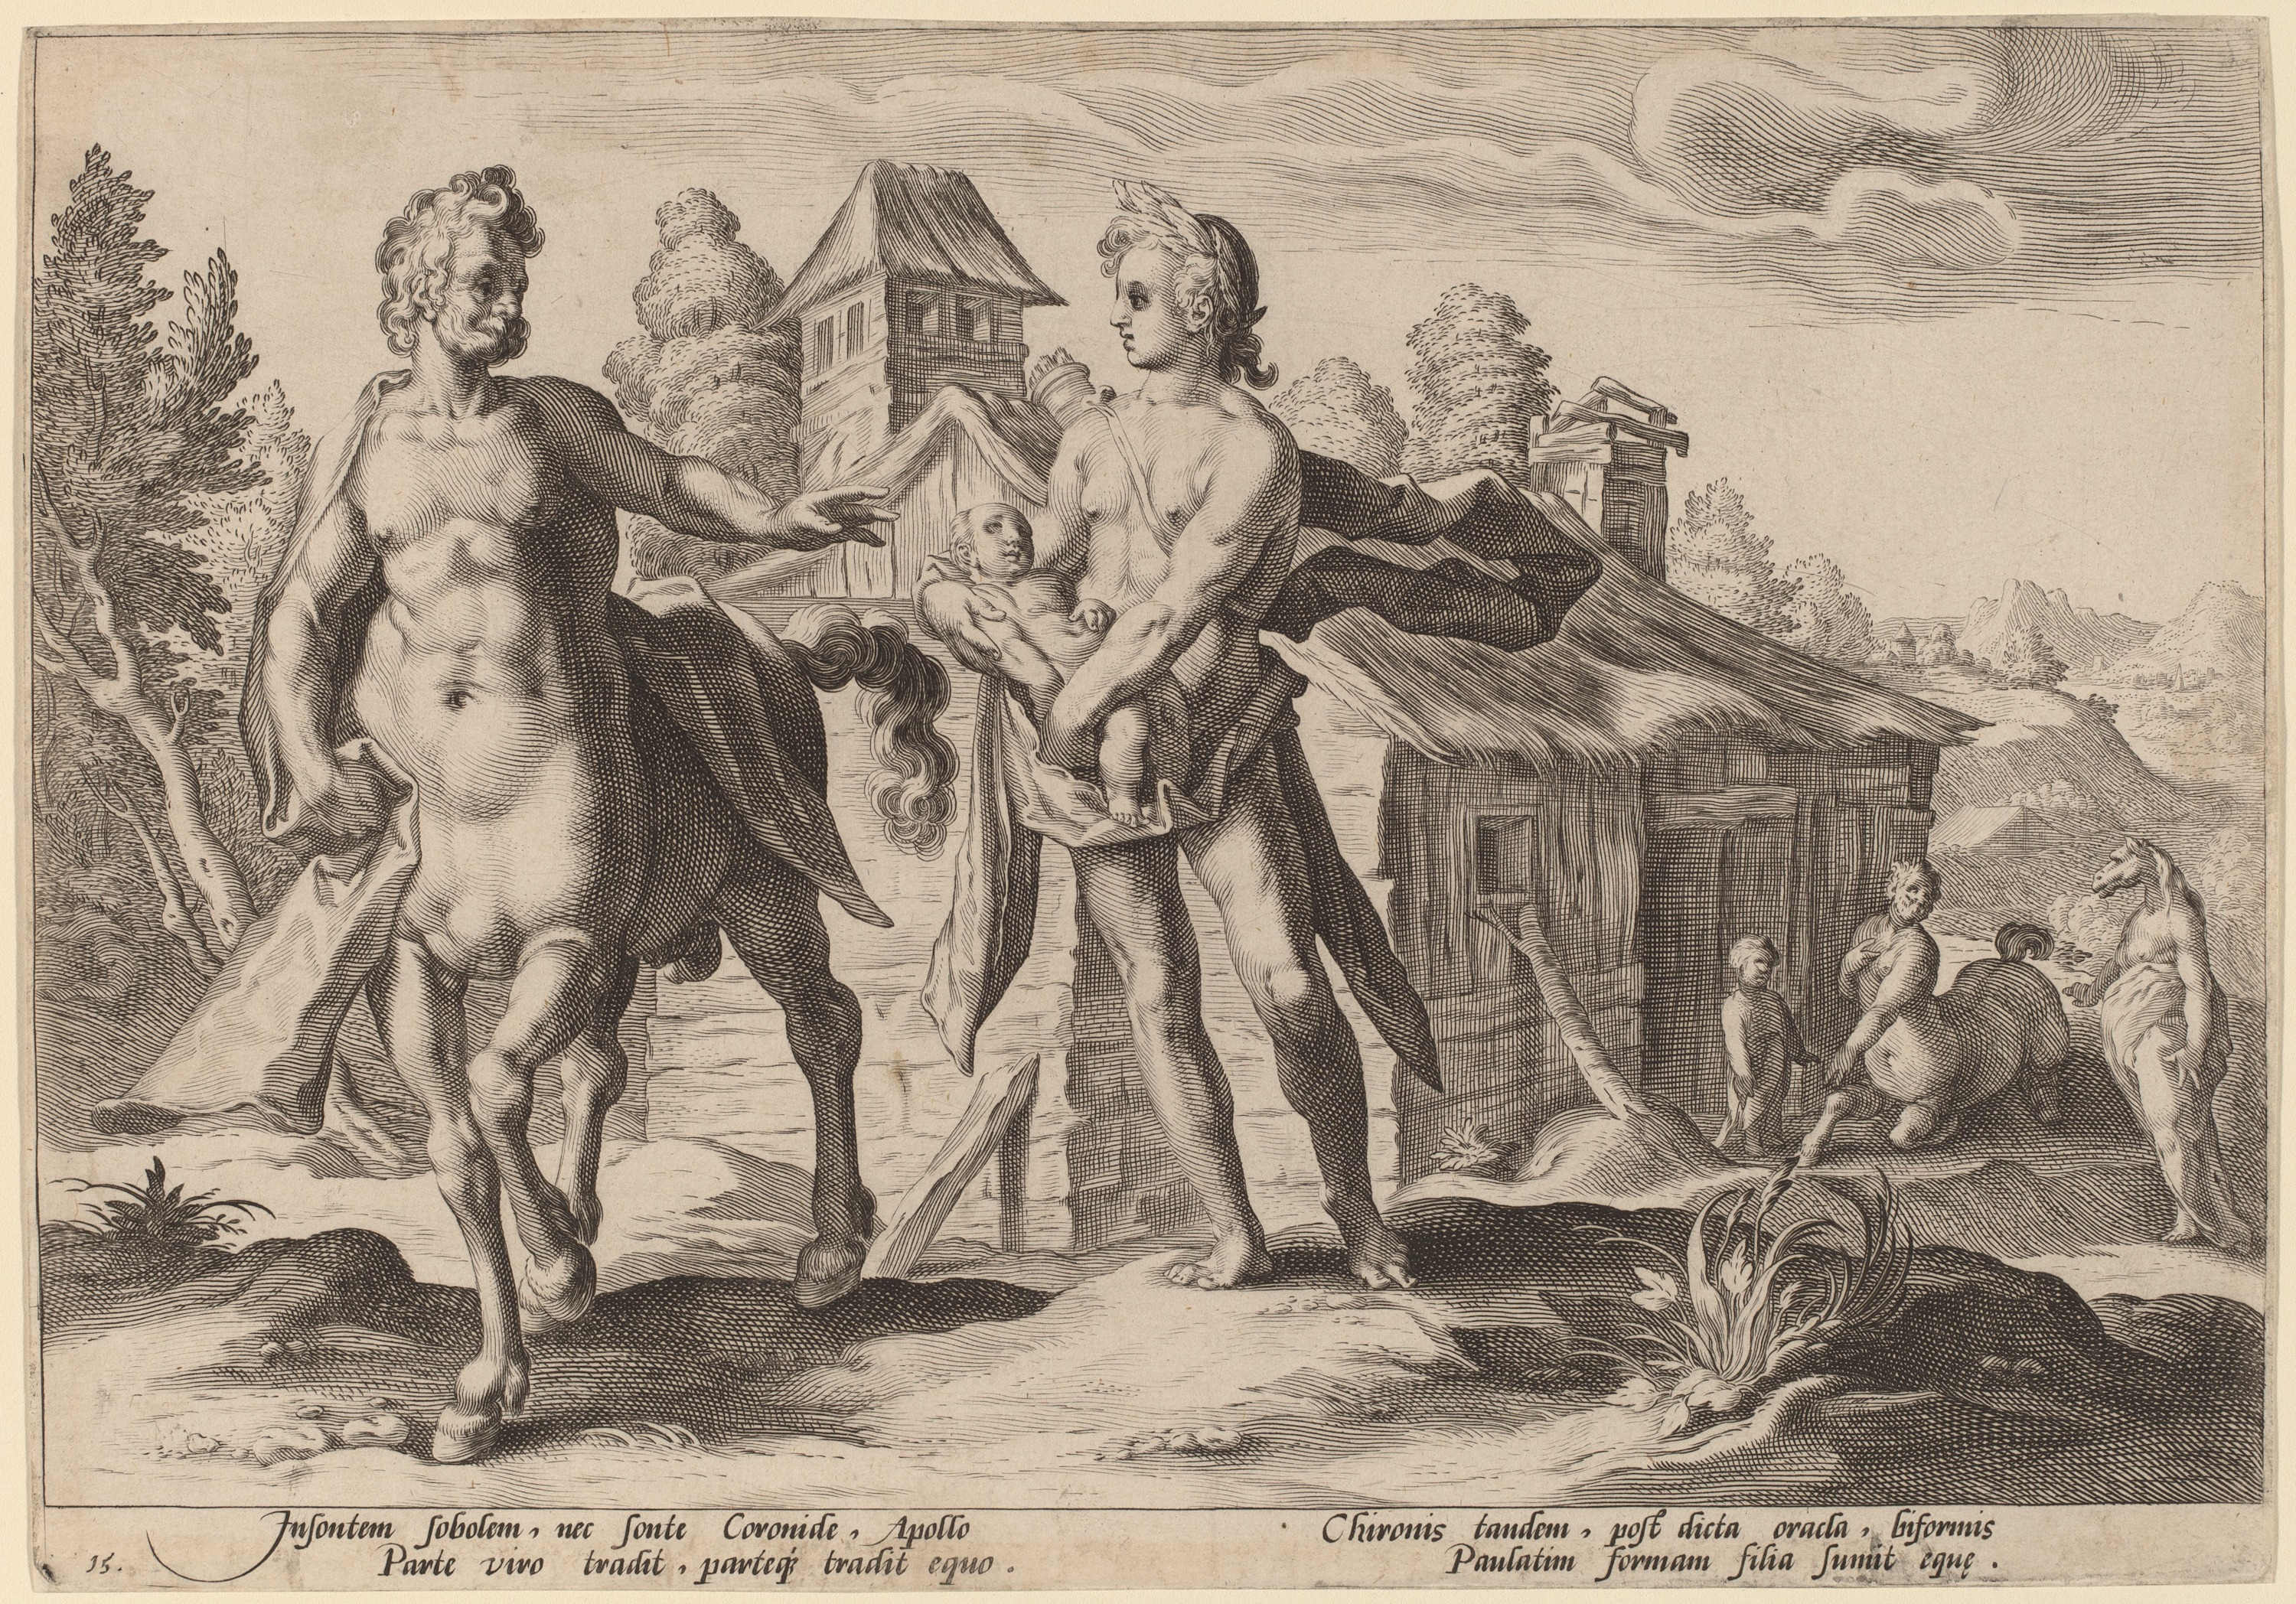 An image of Aesculapius with Chiron the centaur.